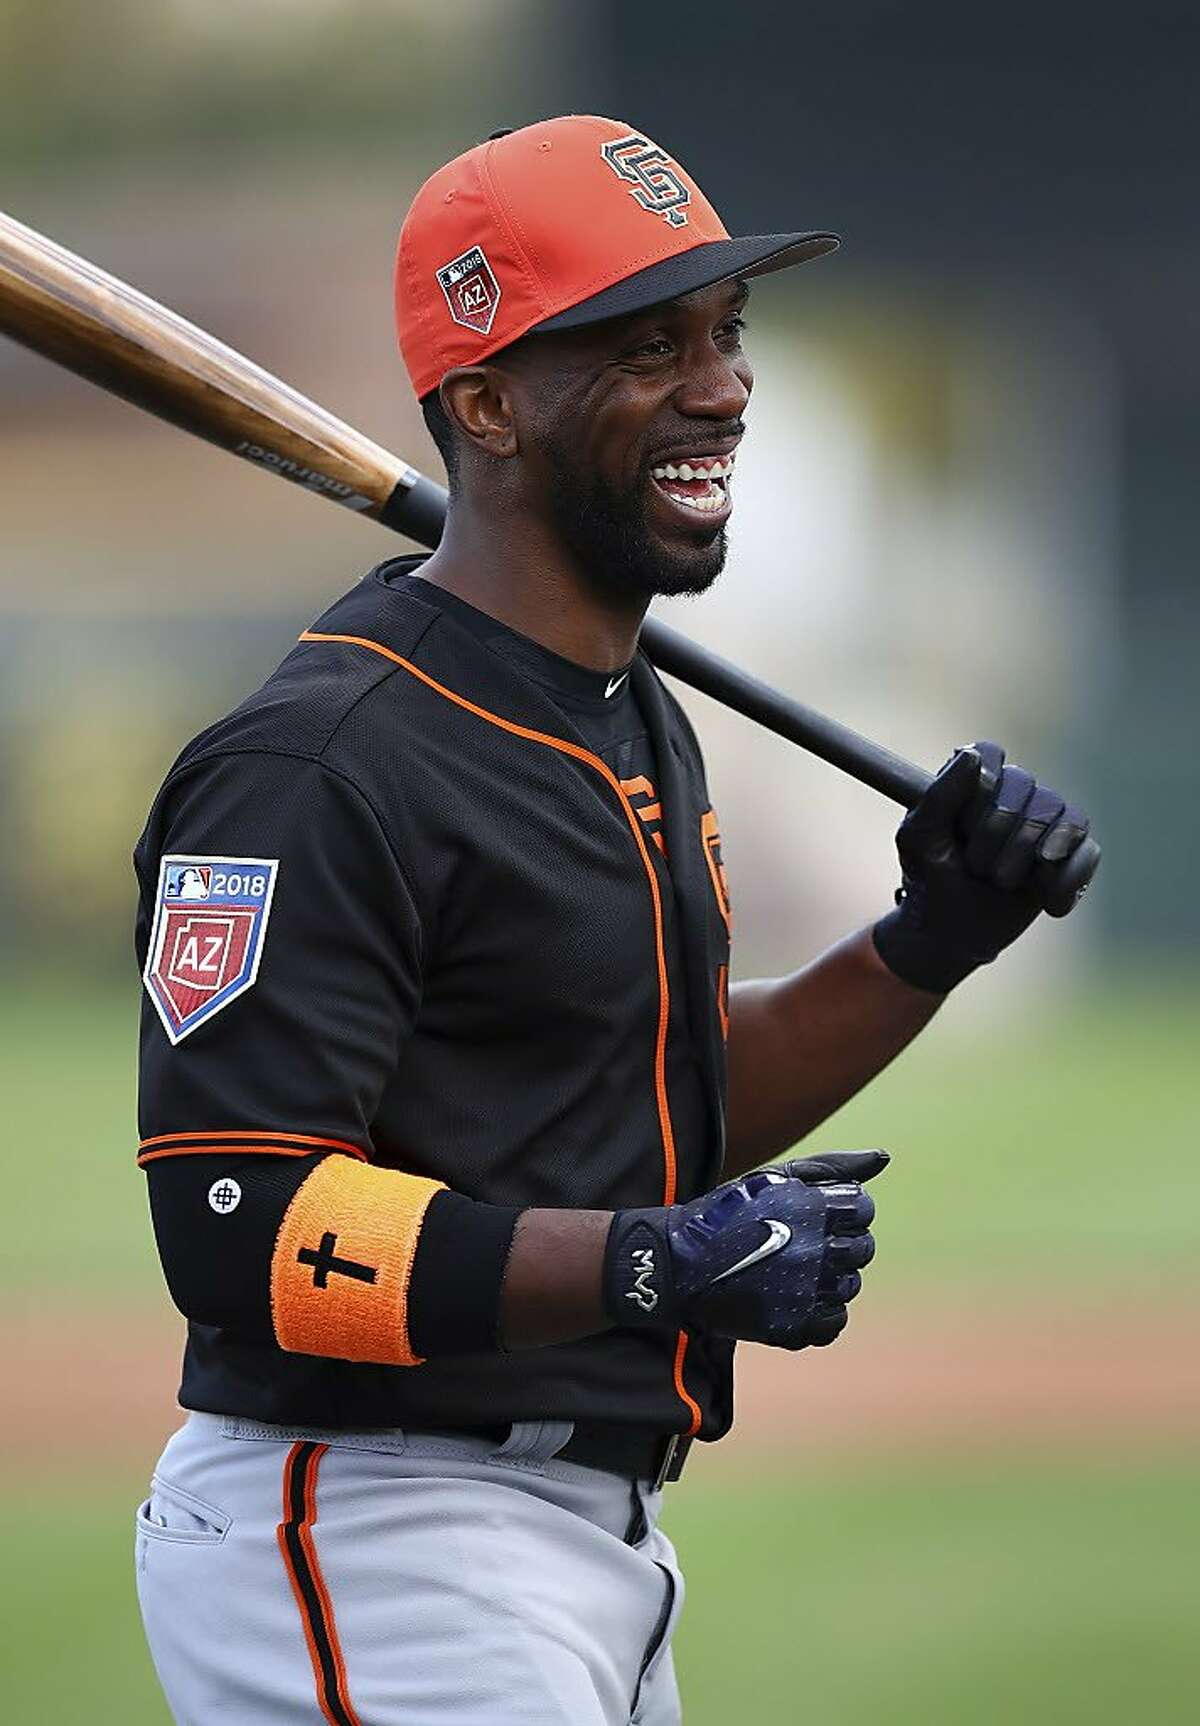 San Francisco Giants' Andrew McCutchen laughs during a spring training baseball batting practice on Monday, Feb. 19, 2018 in Scottsdale, Ariz.